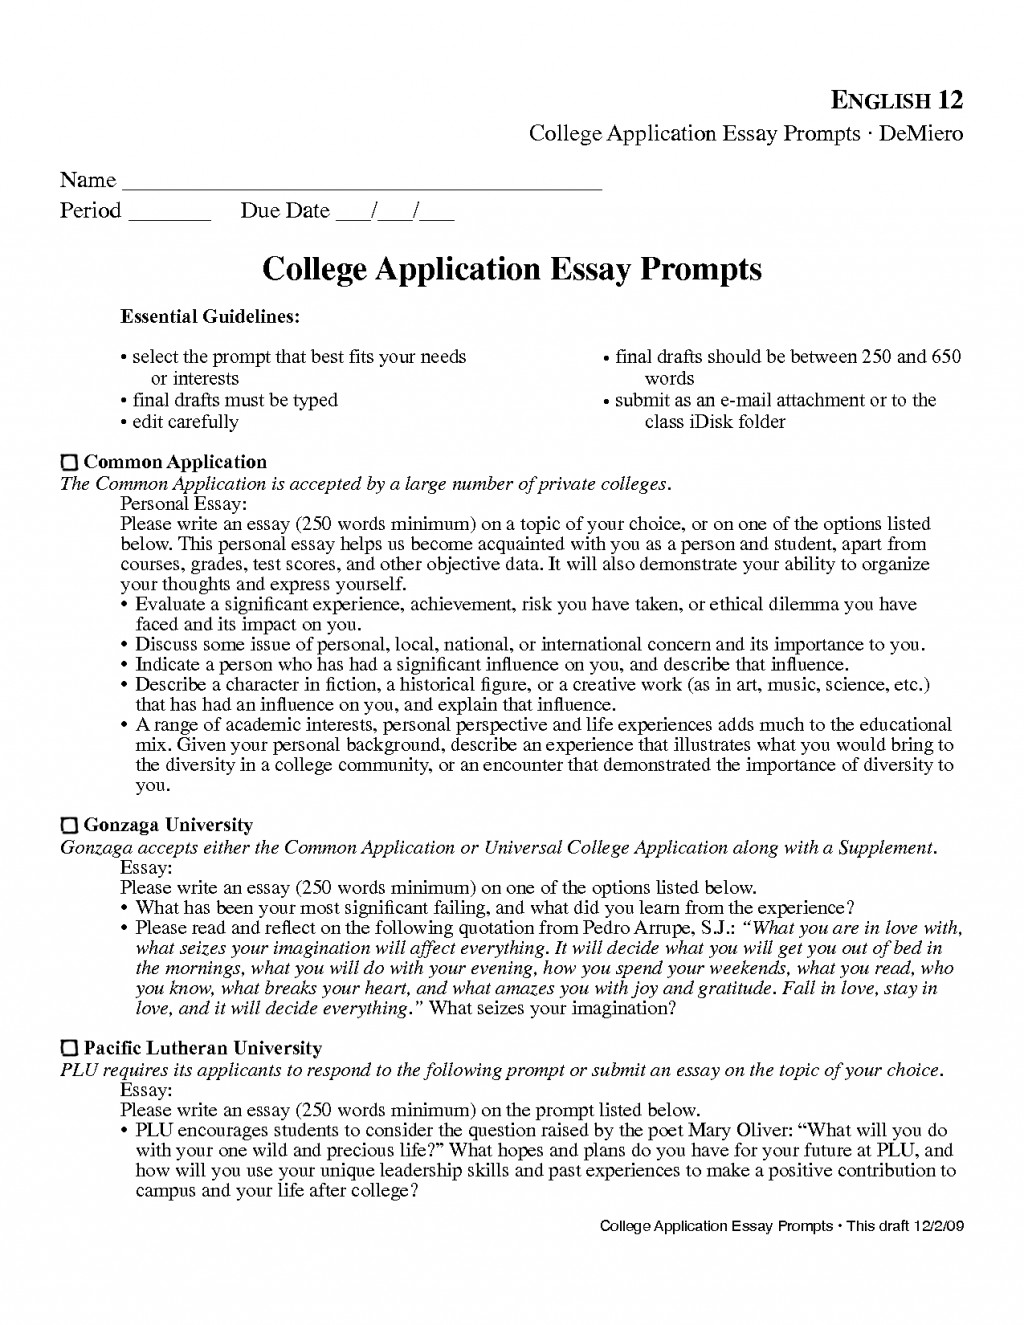 001 Using Quotes In College Essays Quotesgram Examples Of Essay Prompts L Example Unique For Writing Esl Students Argumentative Expository Large